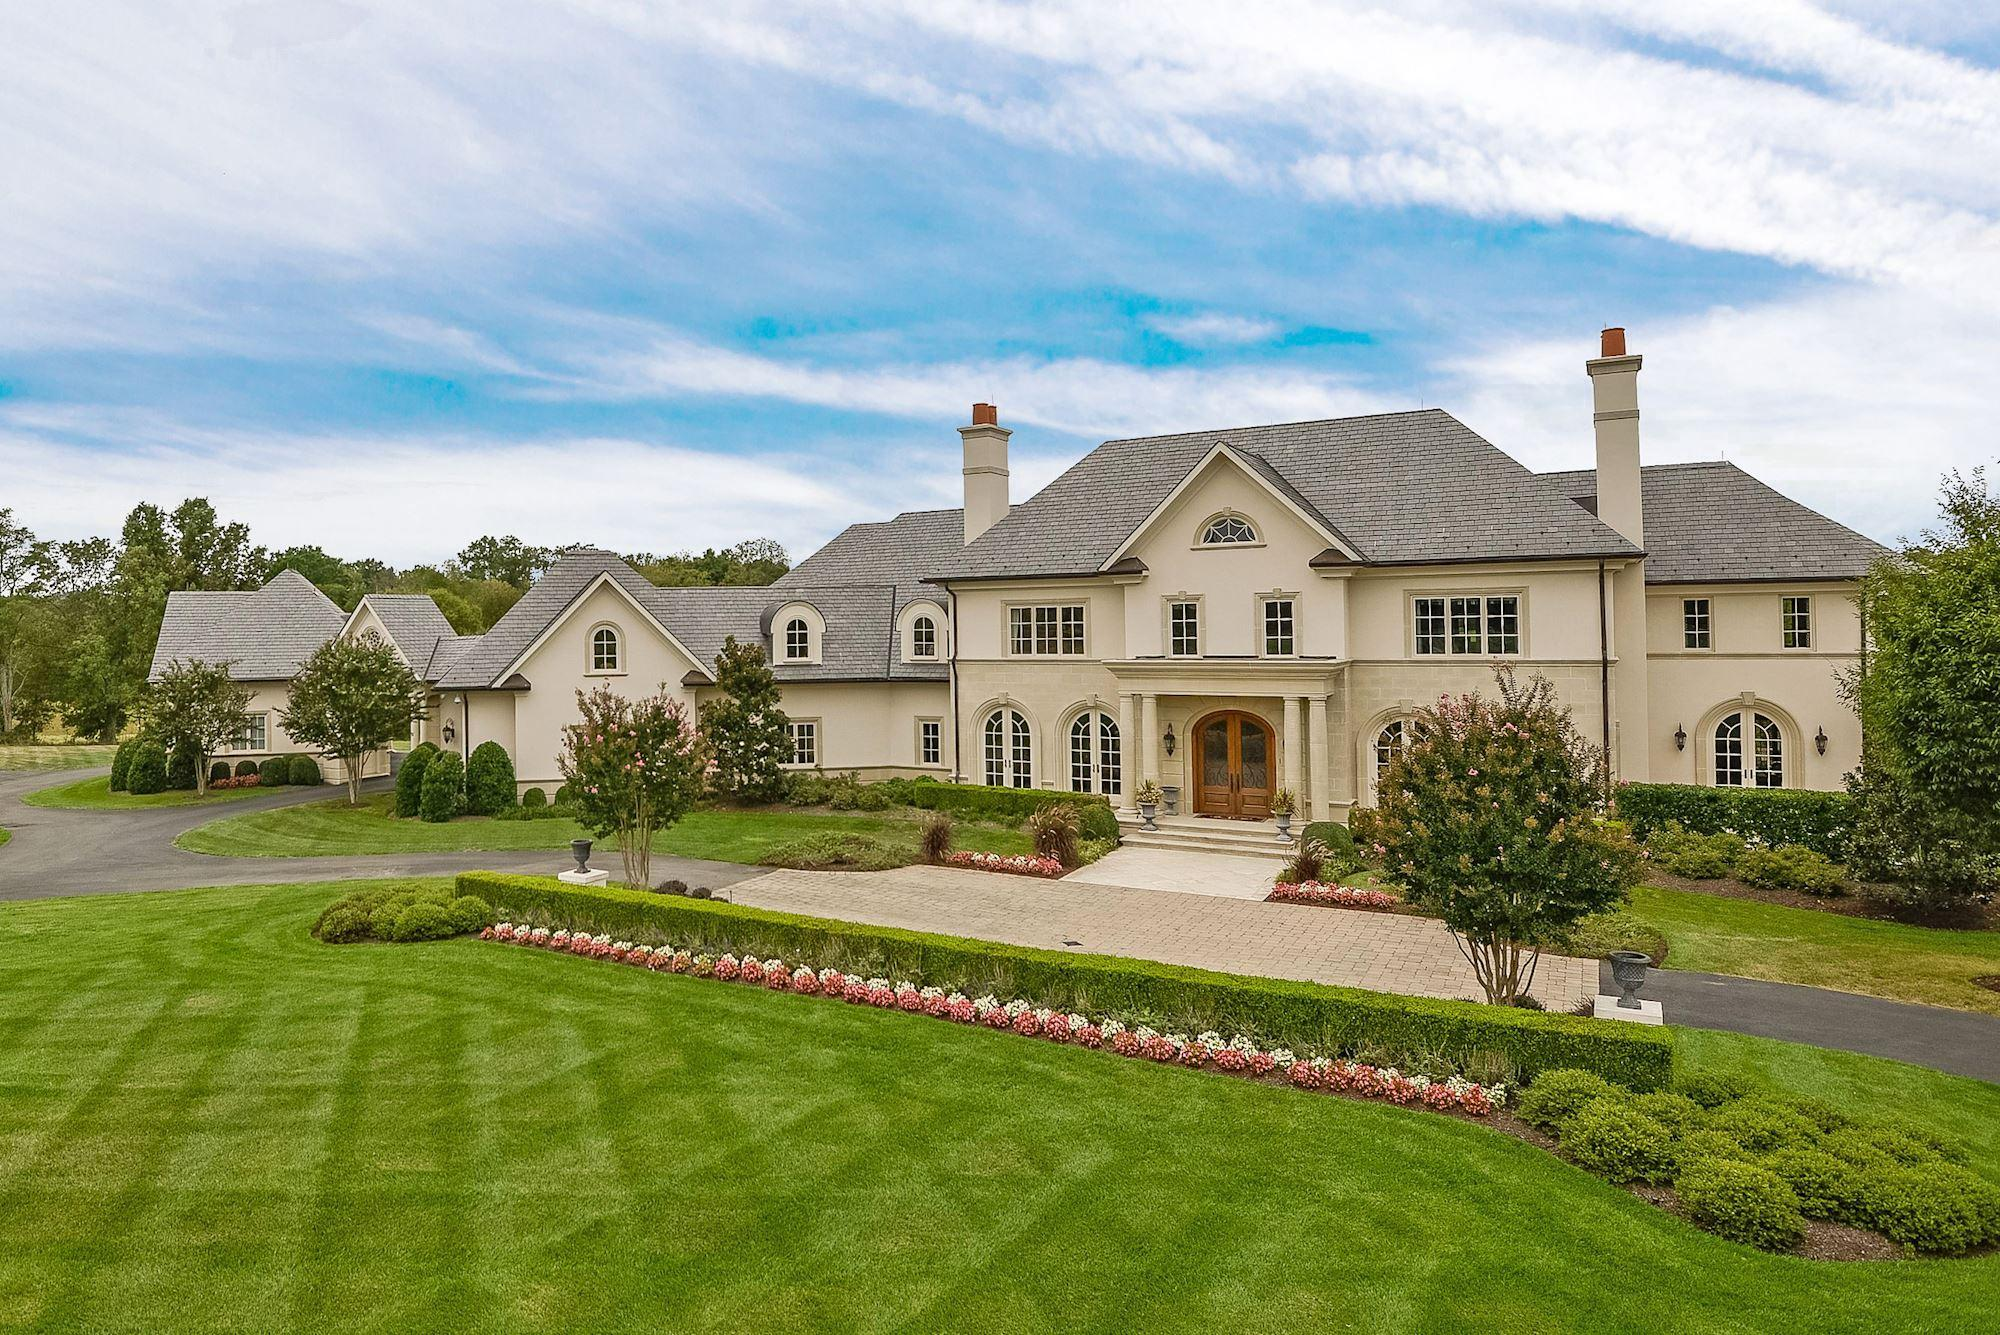 This 58M mansion has all the amenities of a luxury